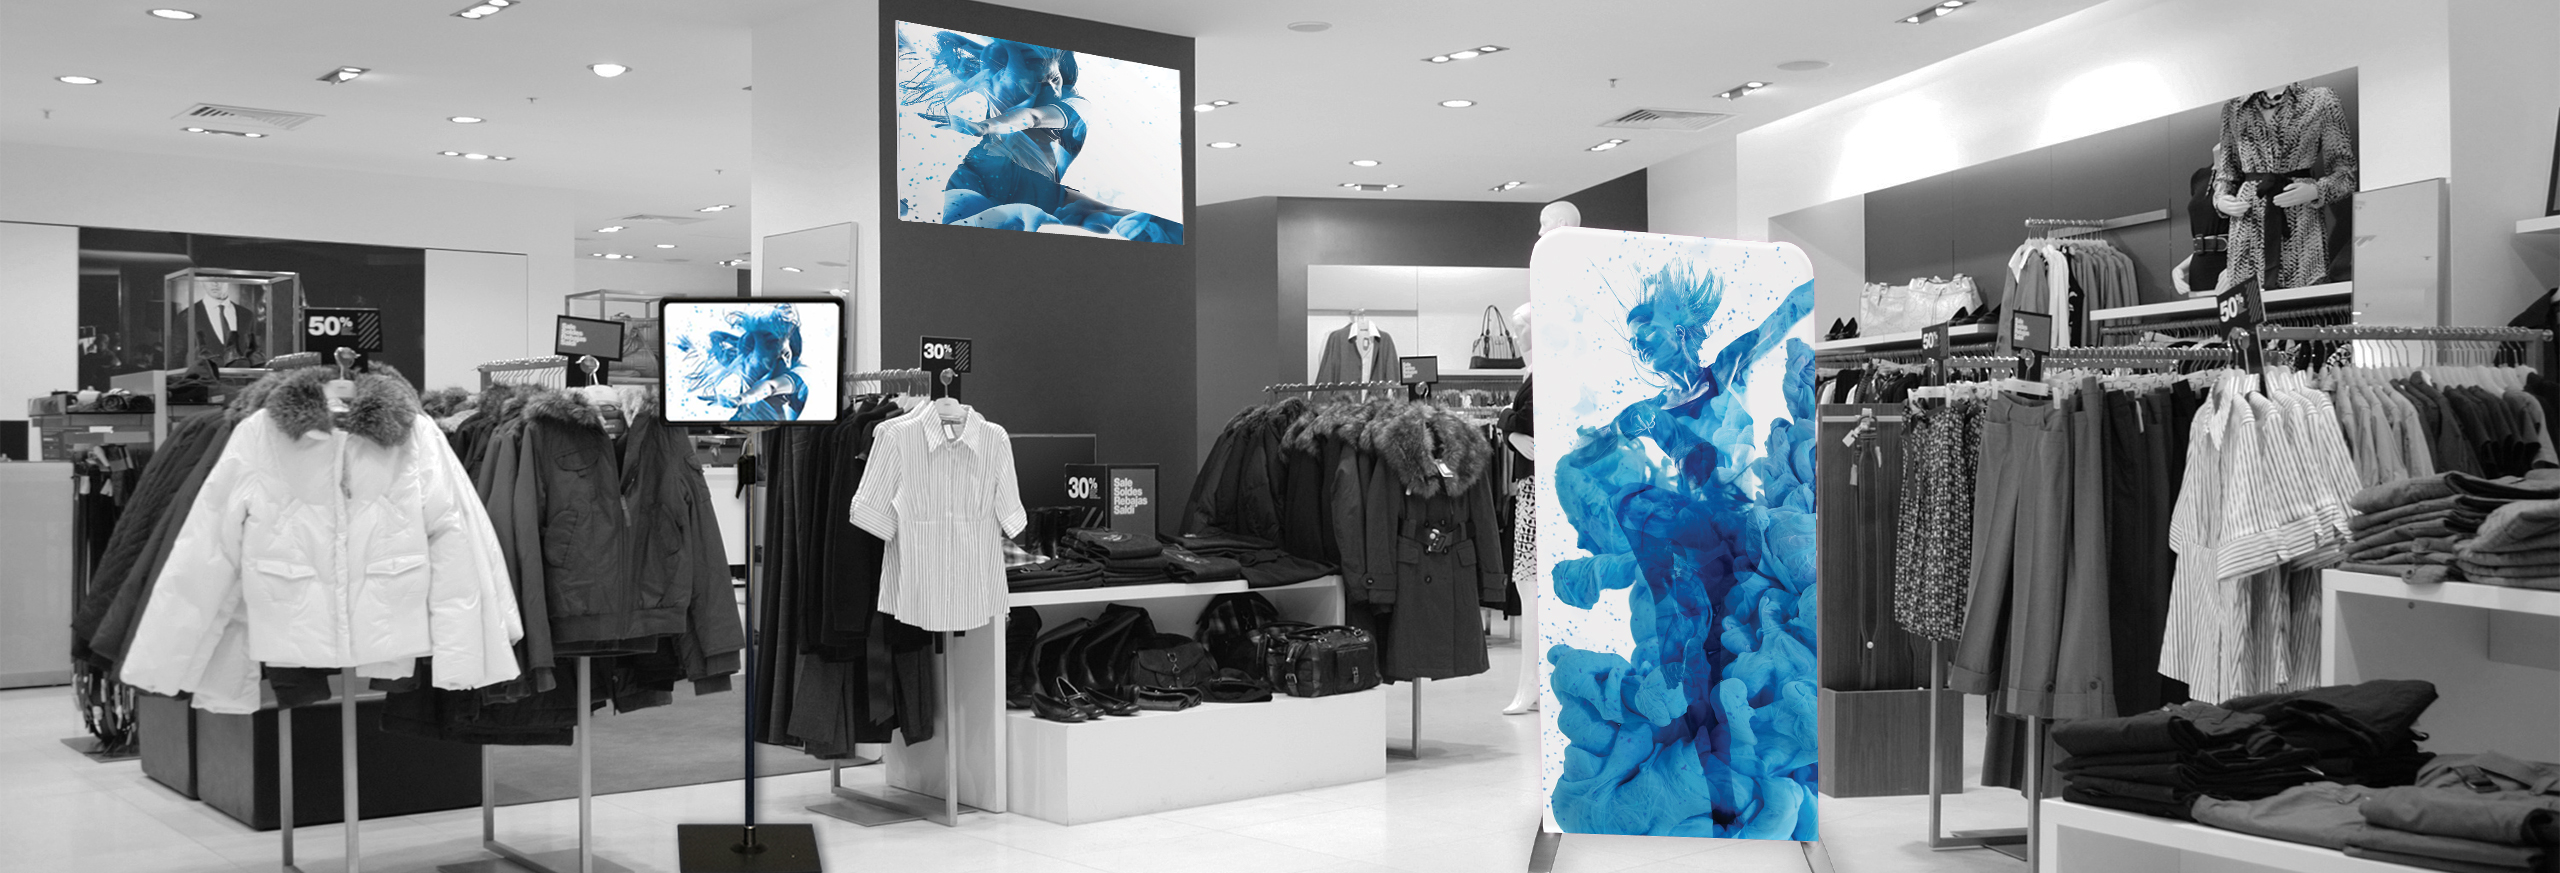 the benefits of retail signage blog